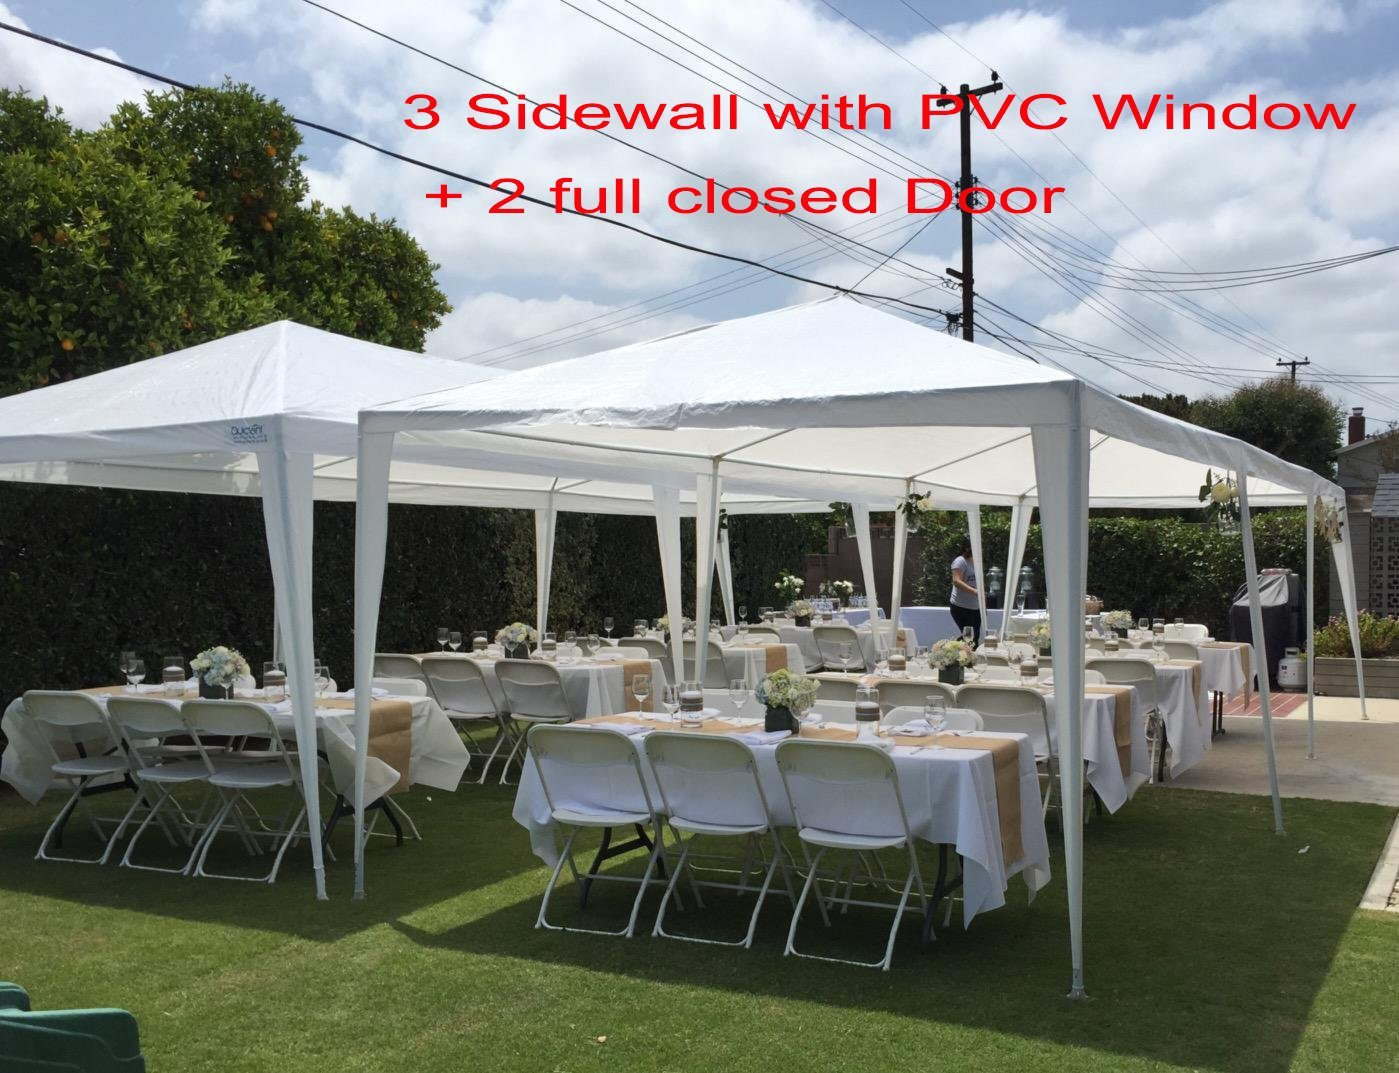 Quictent 10x30 Heavy duty Outdoor Canopy Party Wedding Tent Gazebo Pavilion with 5 Walls  sc 1 st  Walmart.com & Quictent 10x30 Heavy duty Outdoor Canopy Party Wedding Tent Gazebo ...